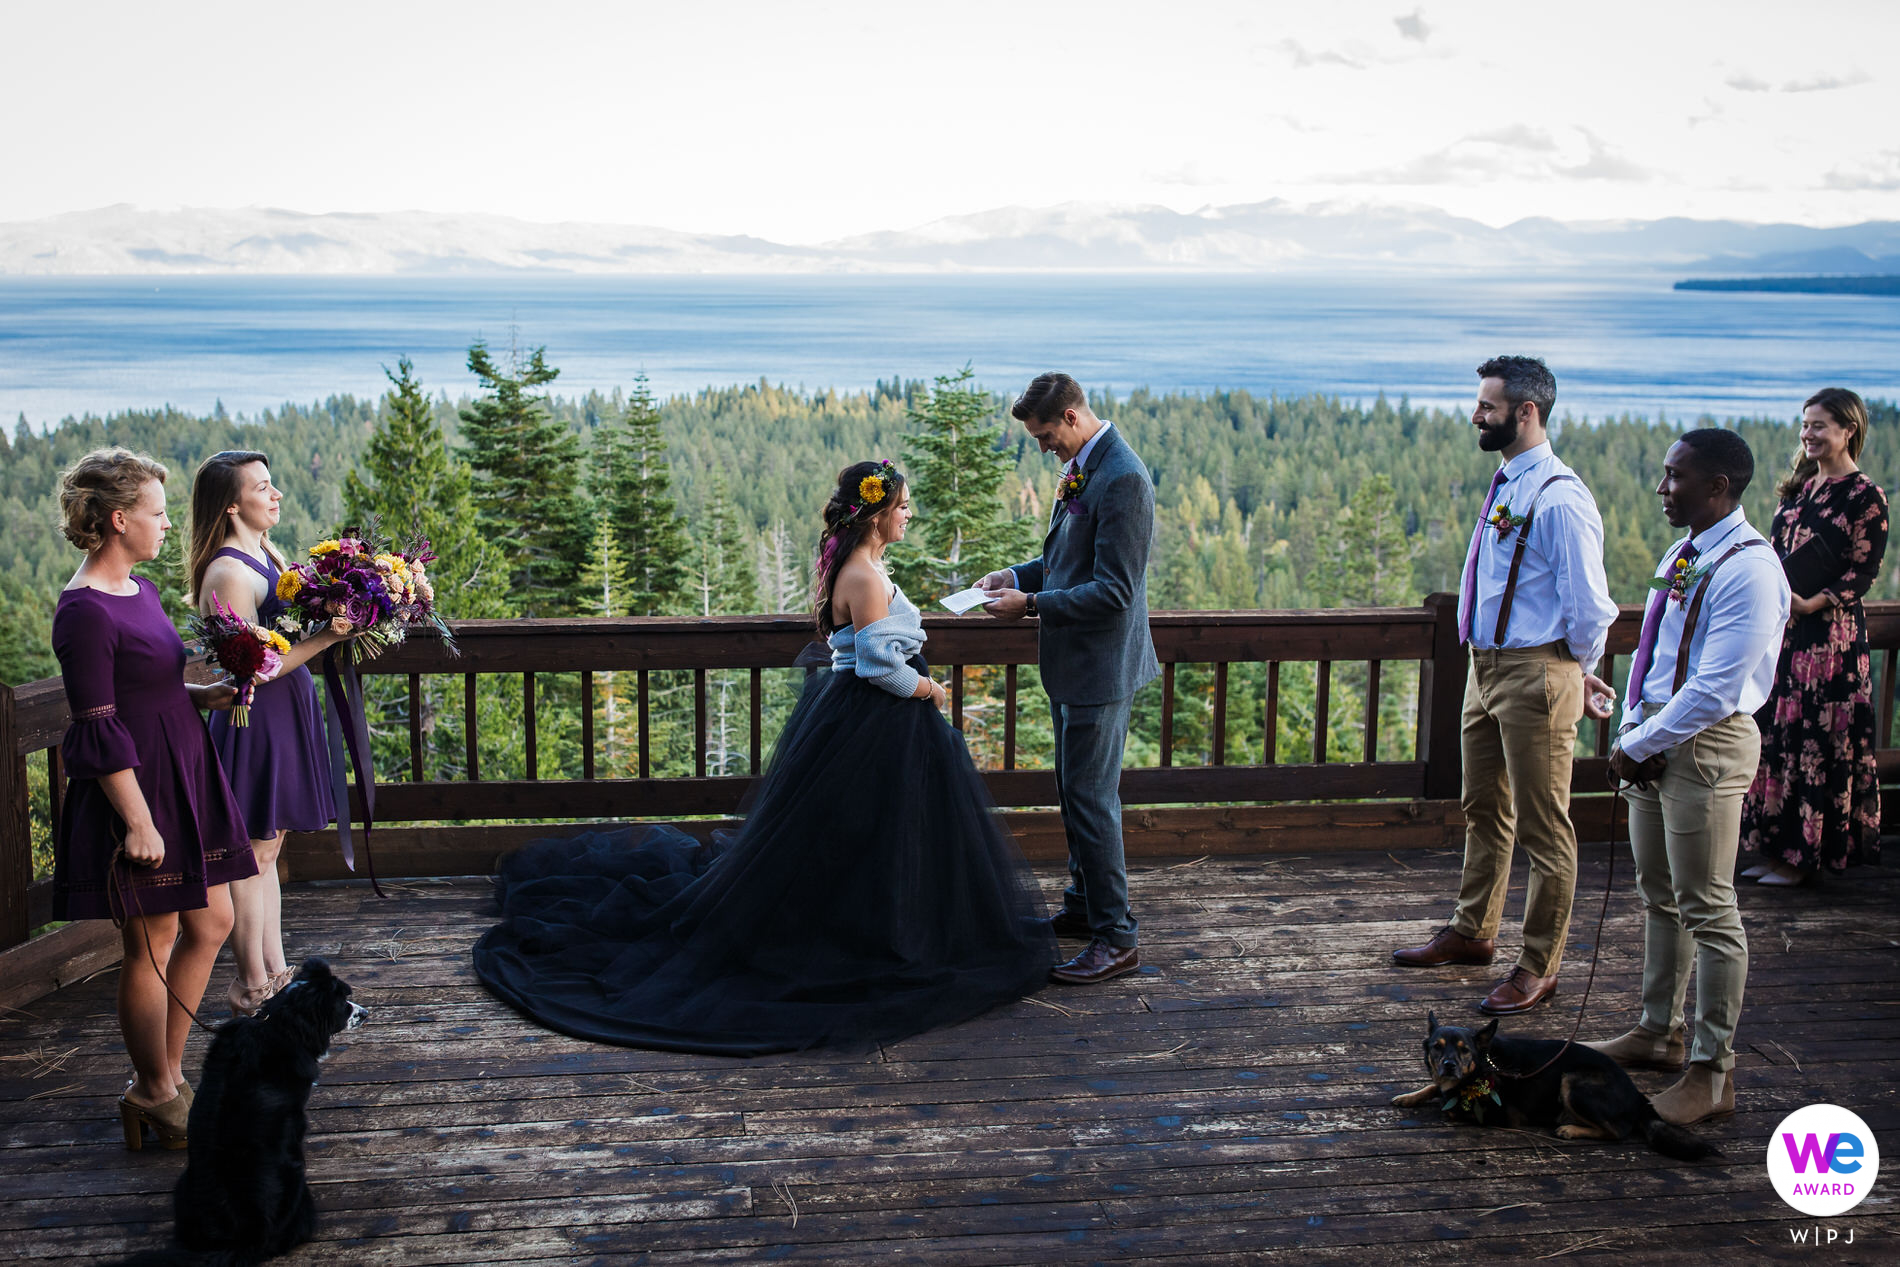 Tahoe City, California Elopement Photography of The bride, groom, and their friends rented a house in Tahoe City with a sweeping view of Lake Tahoe. The wedding ceremony was on the deck.